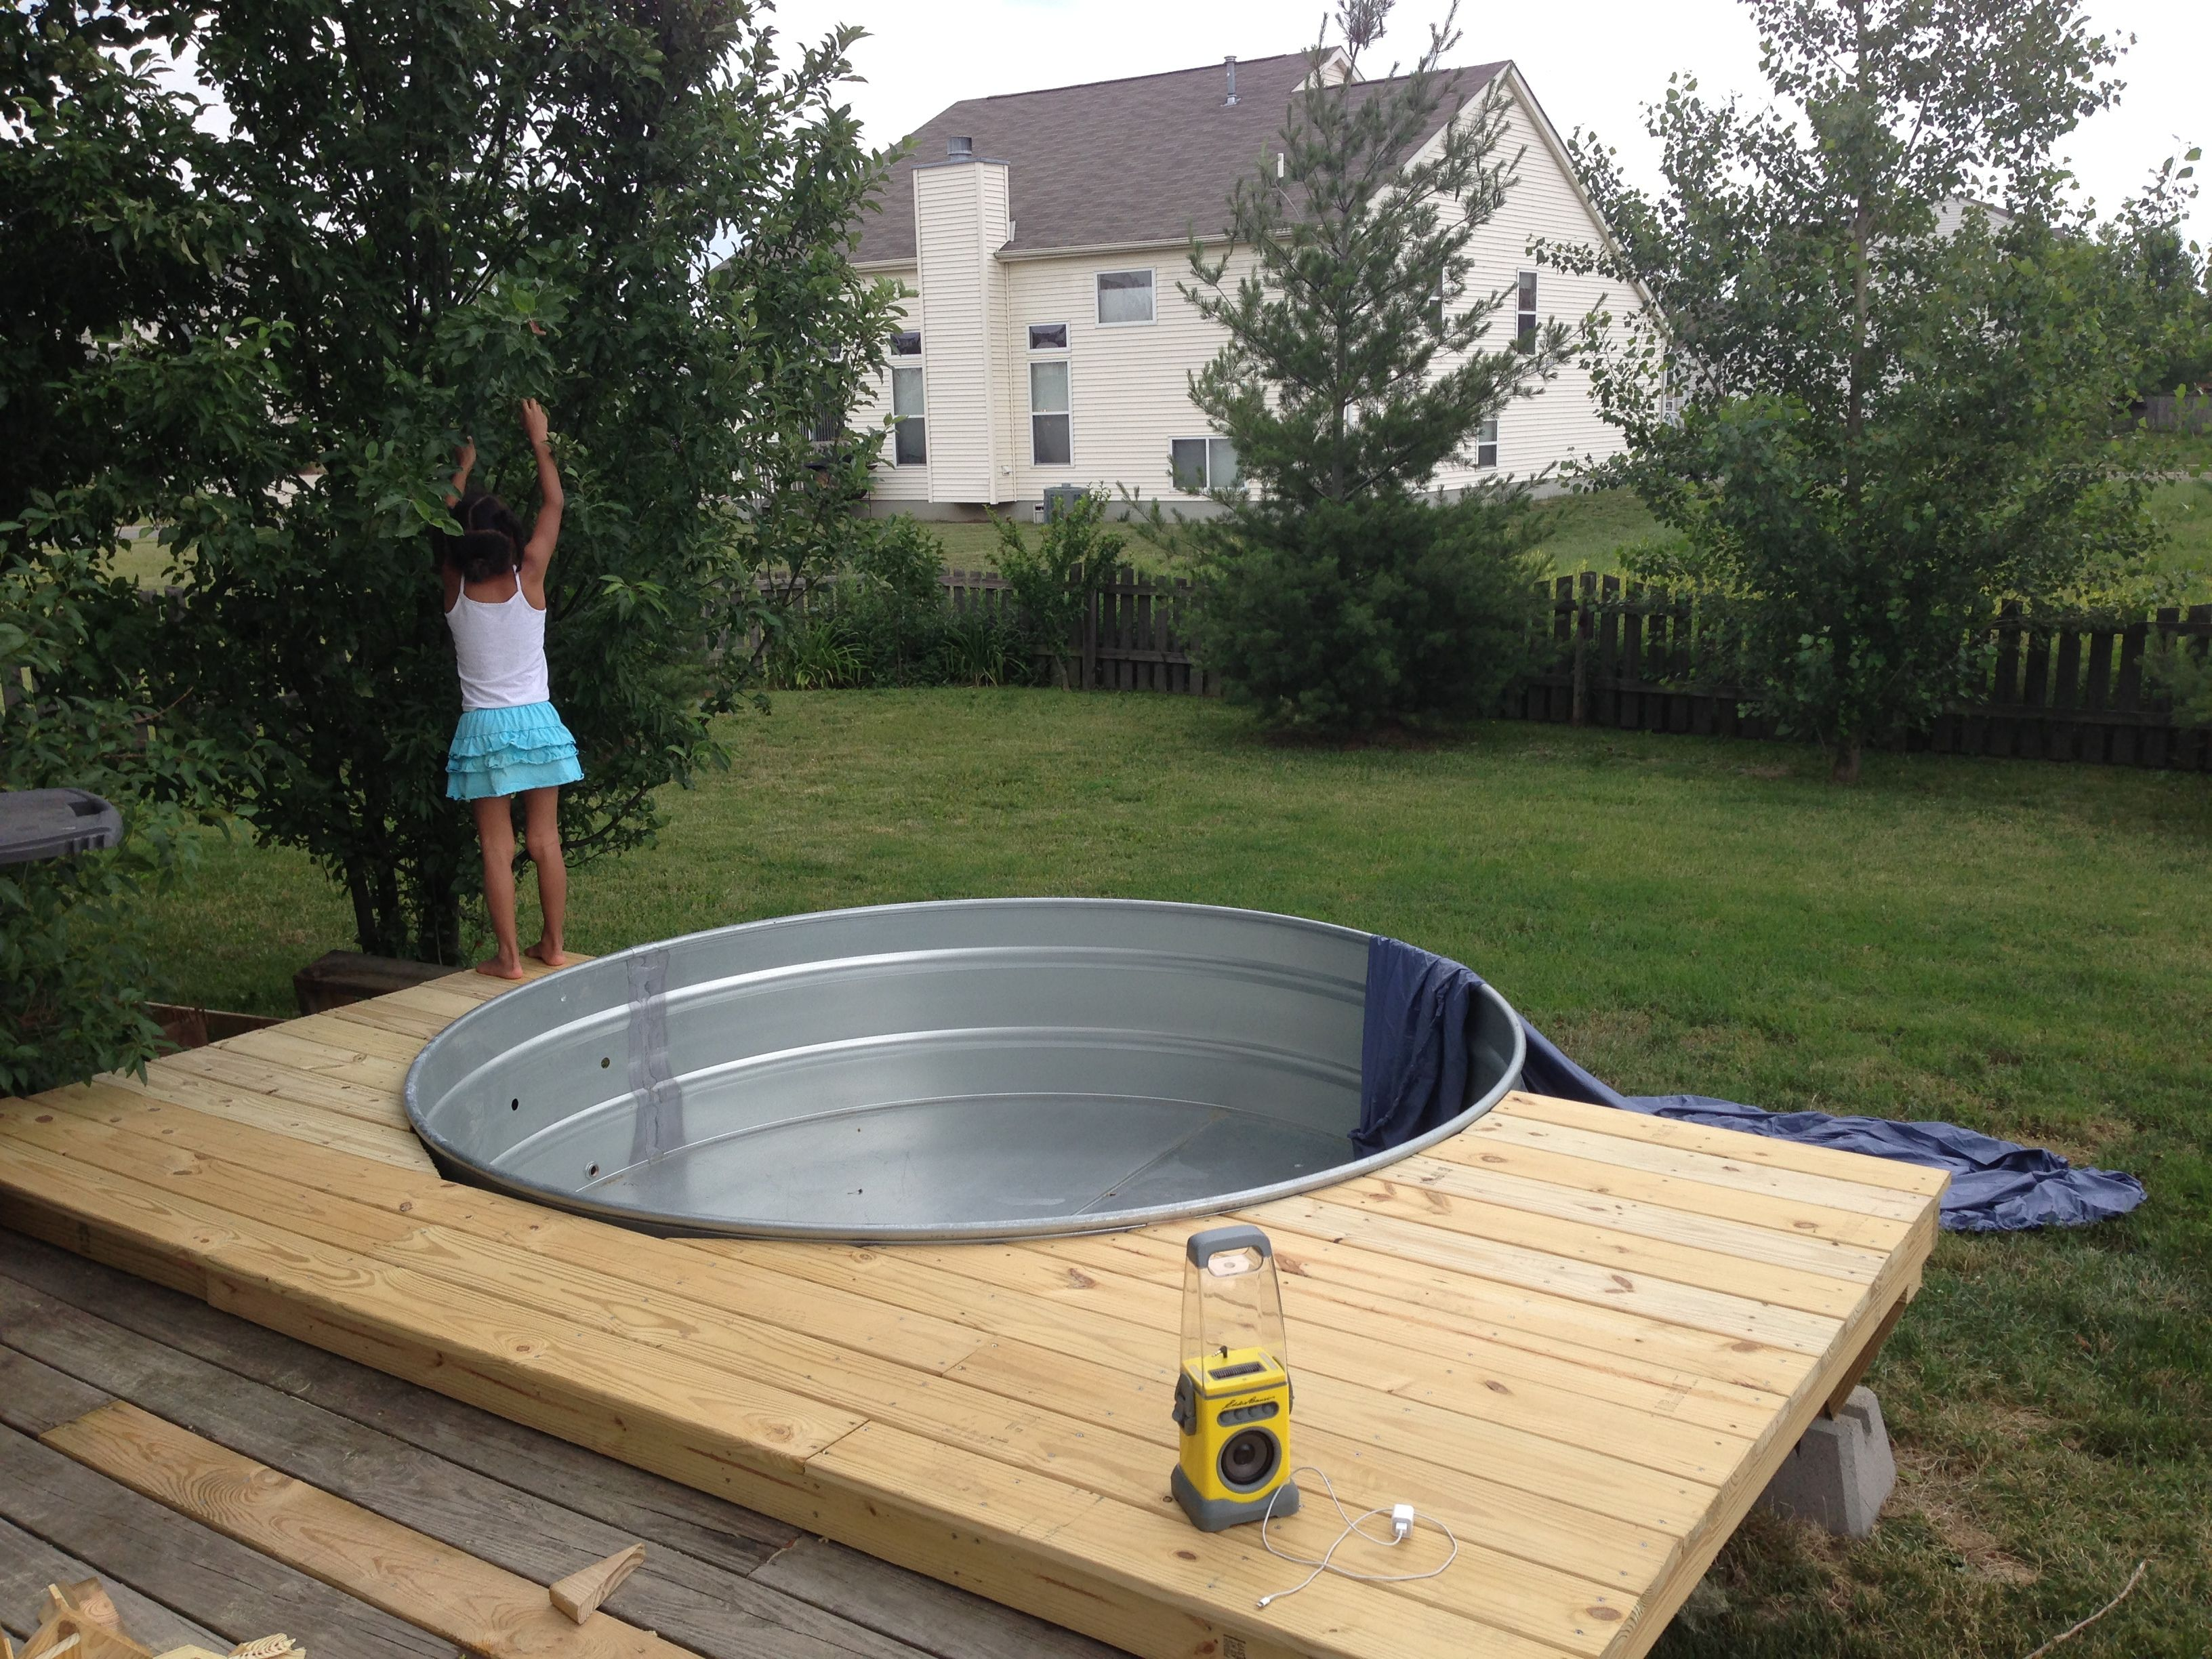 Diy Pool Ideas build a diy dog pool to keep your pup cool healthy paws My Stock Tank Pool With Sun Deck And Filter System Project Turned Out Better Than